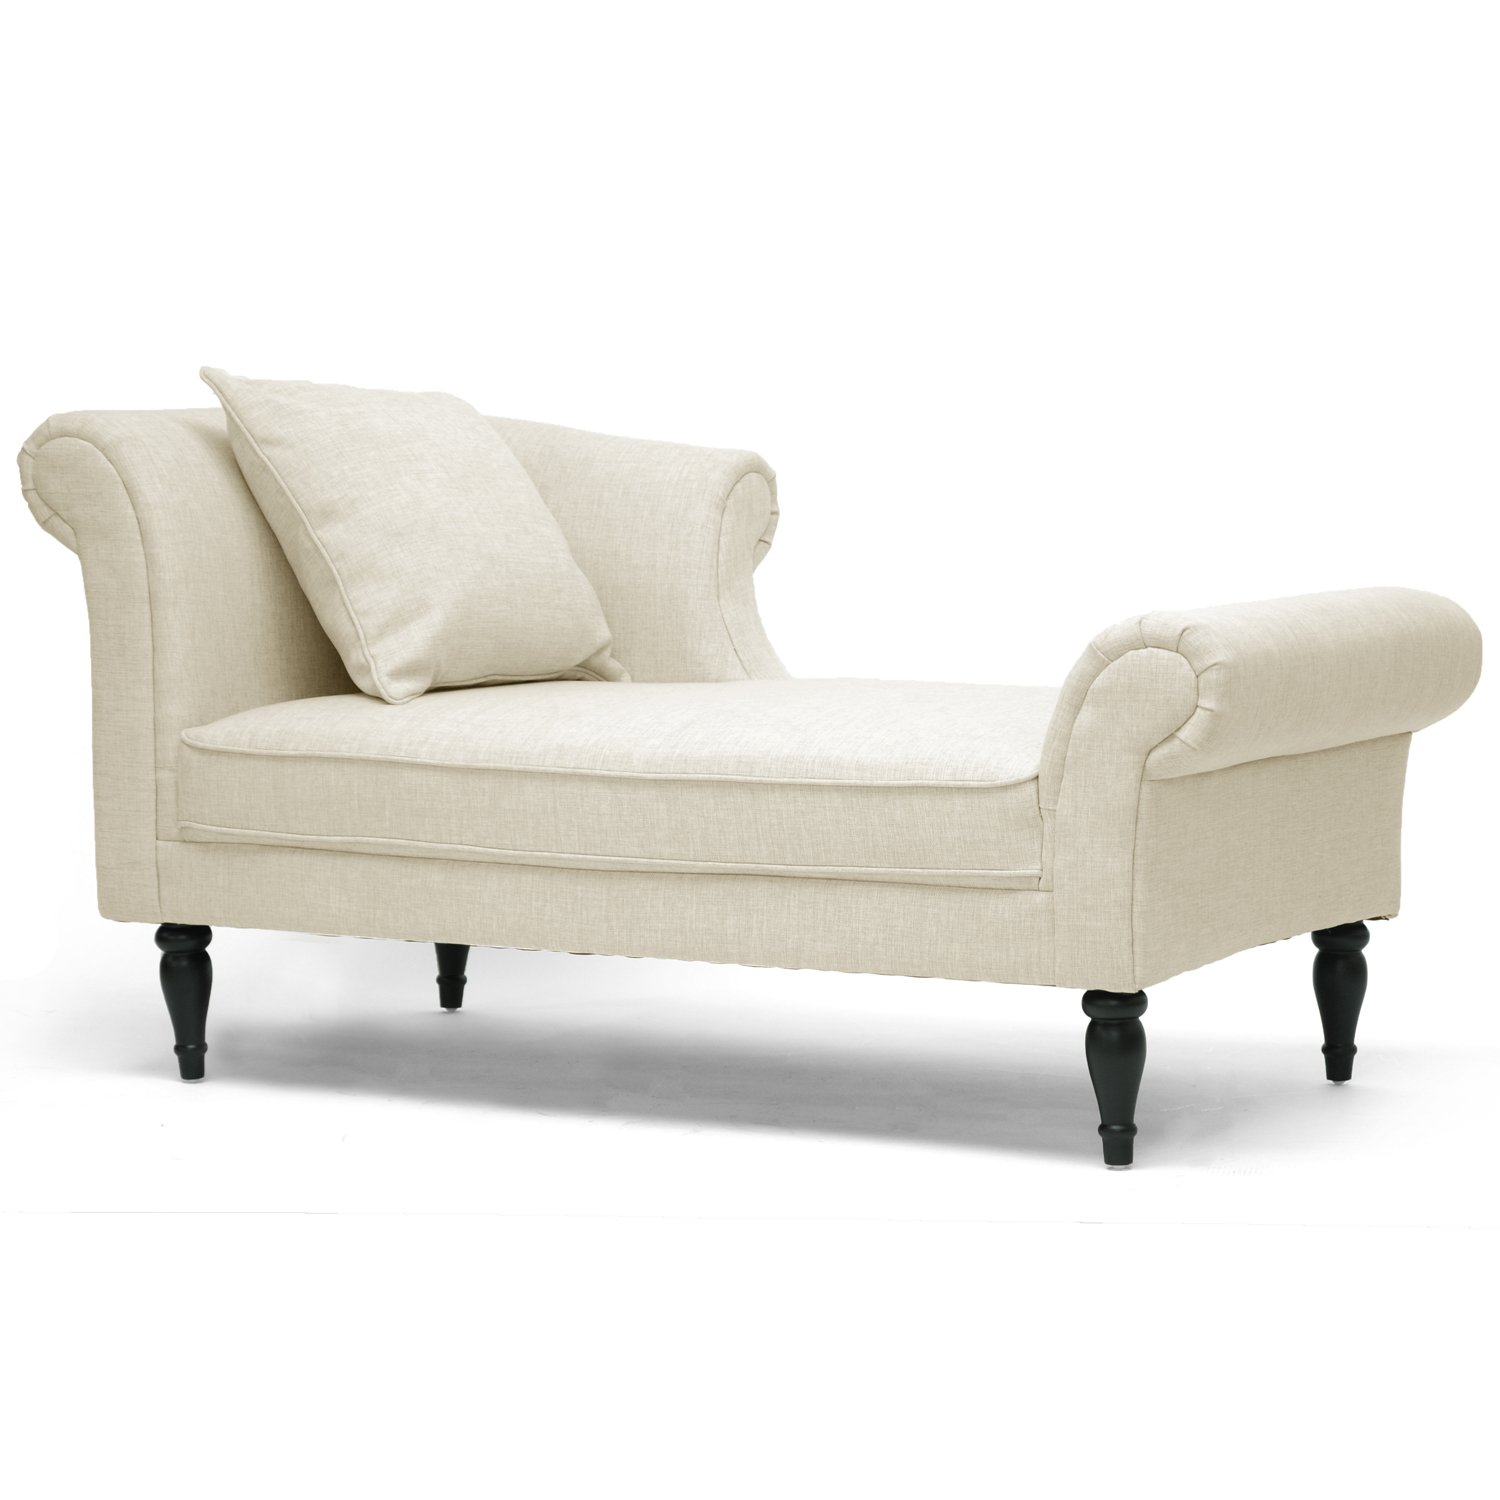 Best Chaise Chaise Lounge Sofa Samples In World